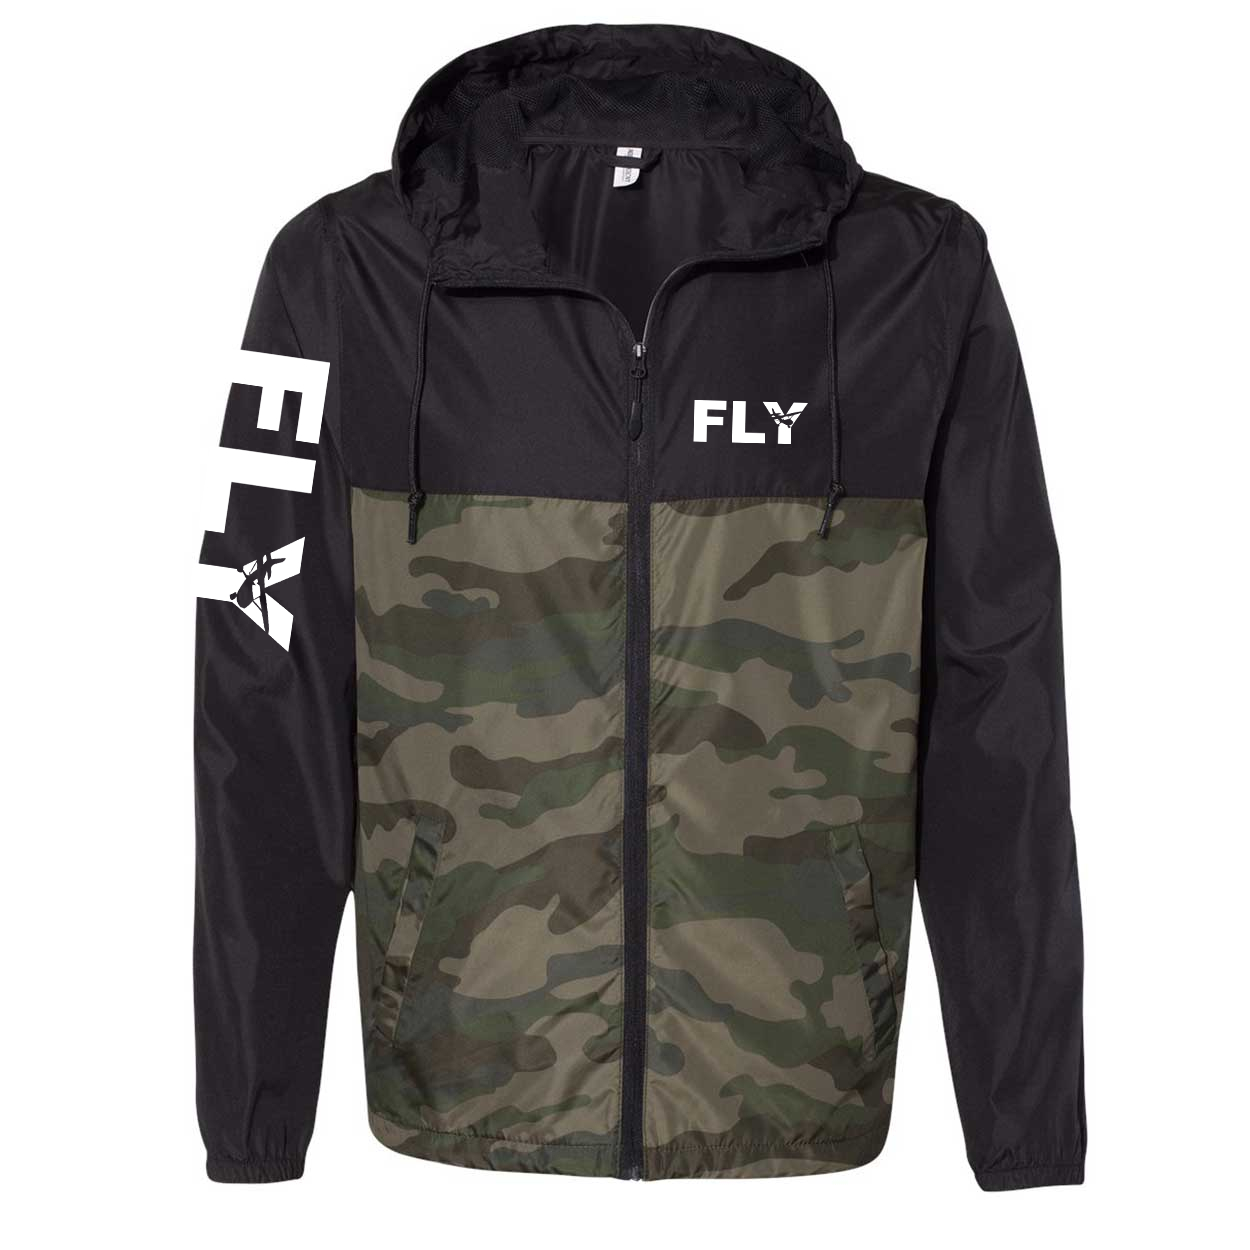 Fly Airplane Logo Classic Lightweight Windbreaker Black/Forest Camo (White Logo)